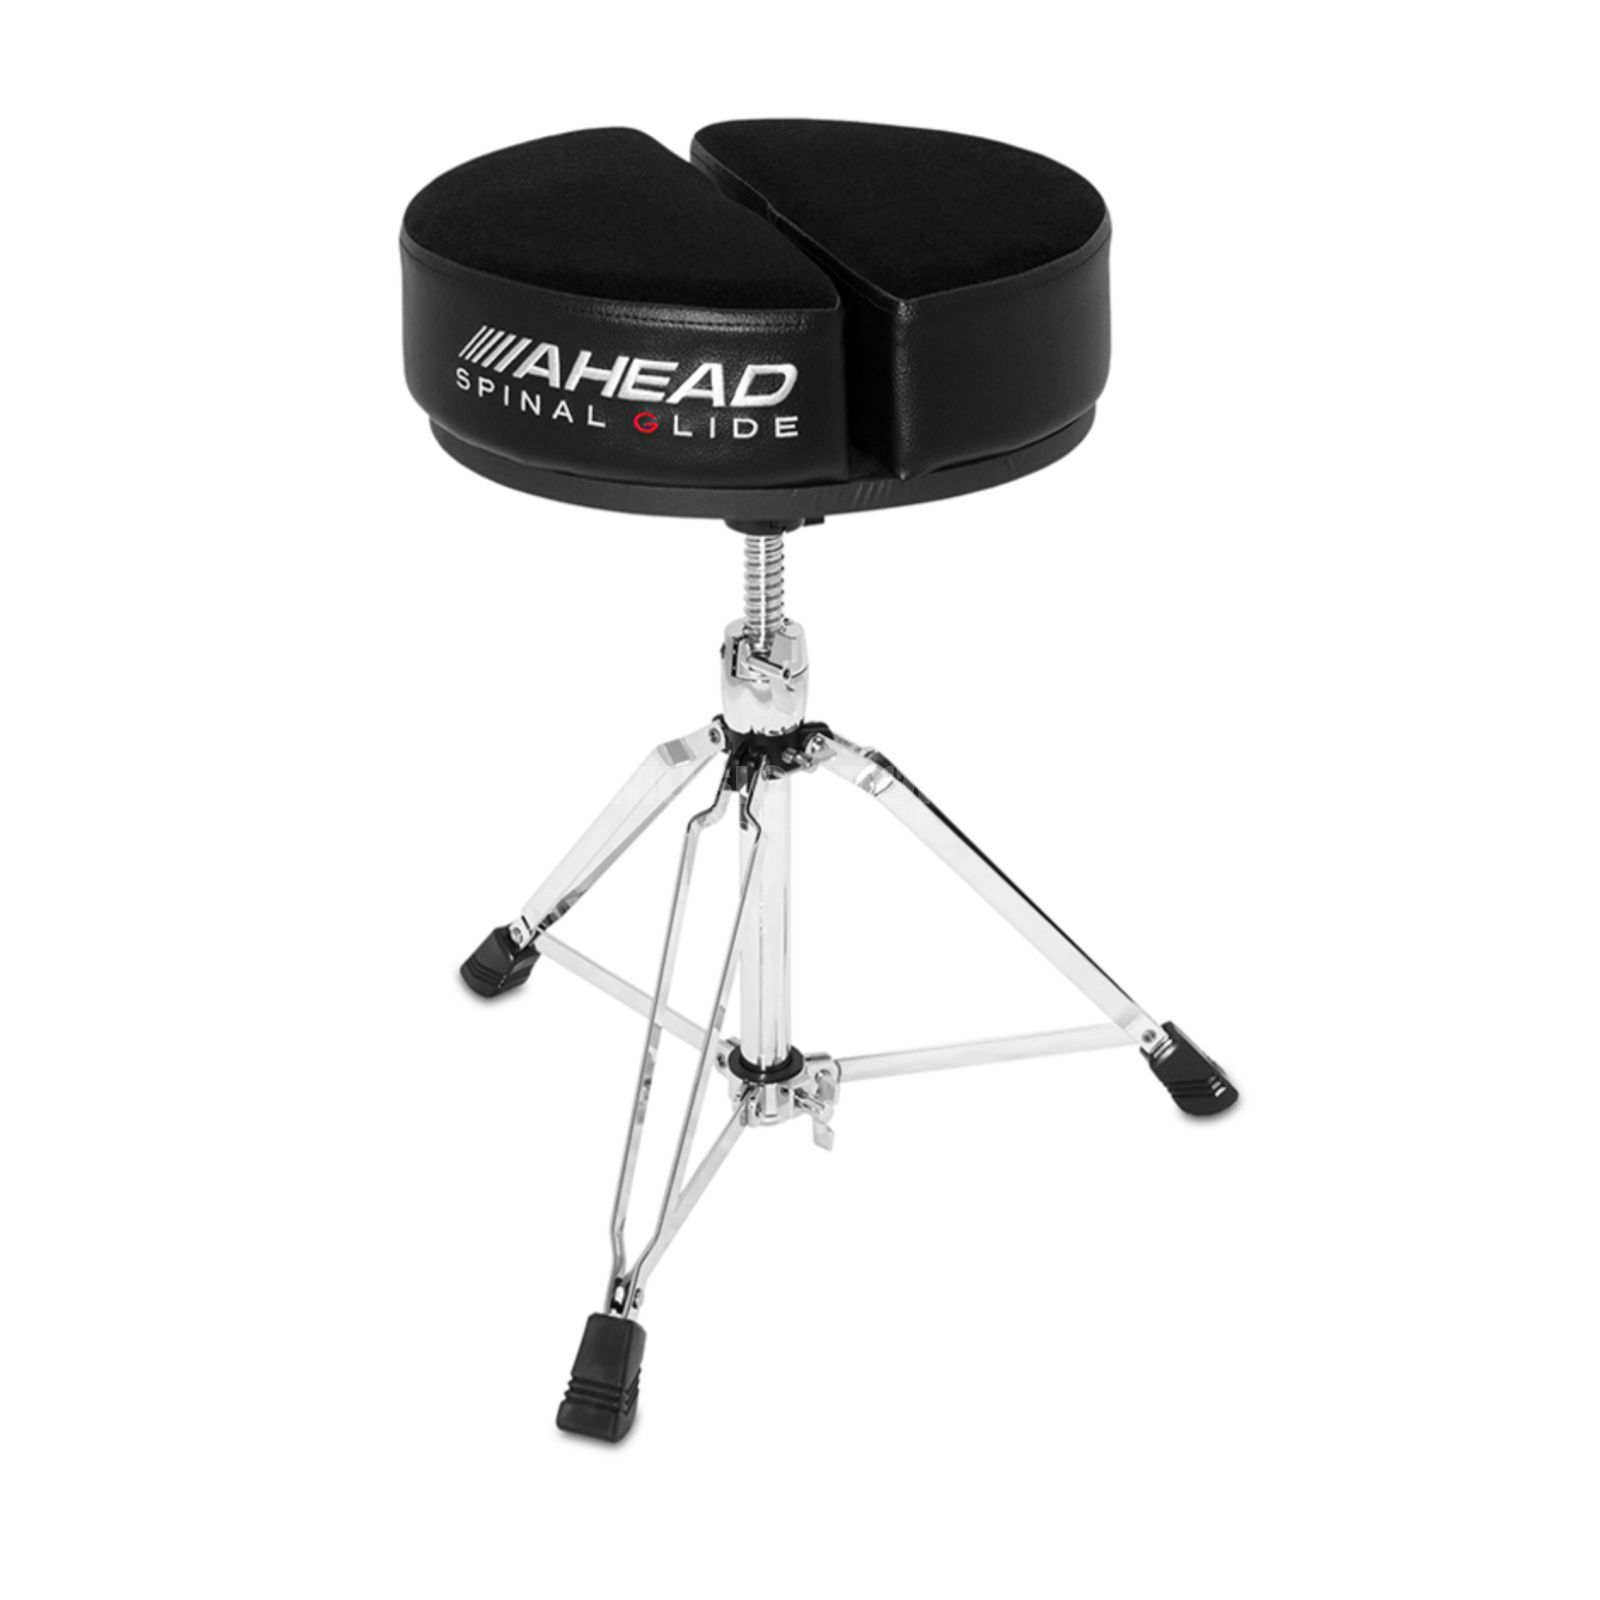 Ahead Spinal Glide Drumhocker rund SPG-ARTB Product Image